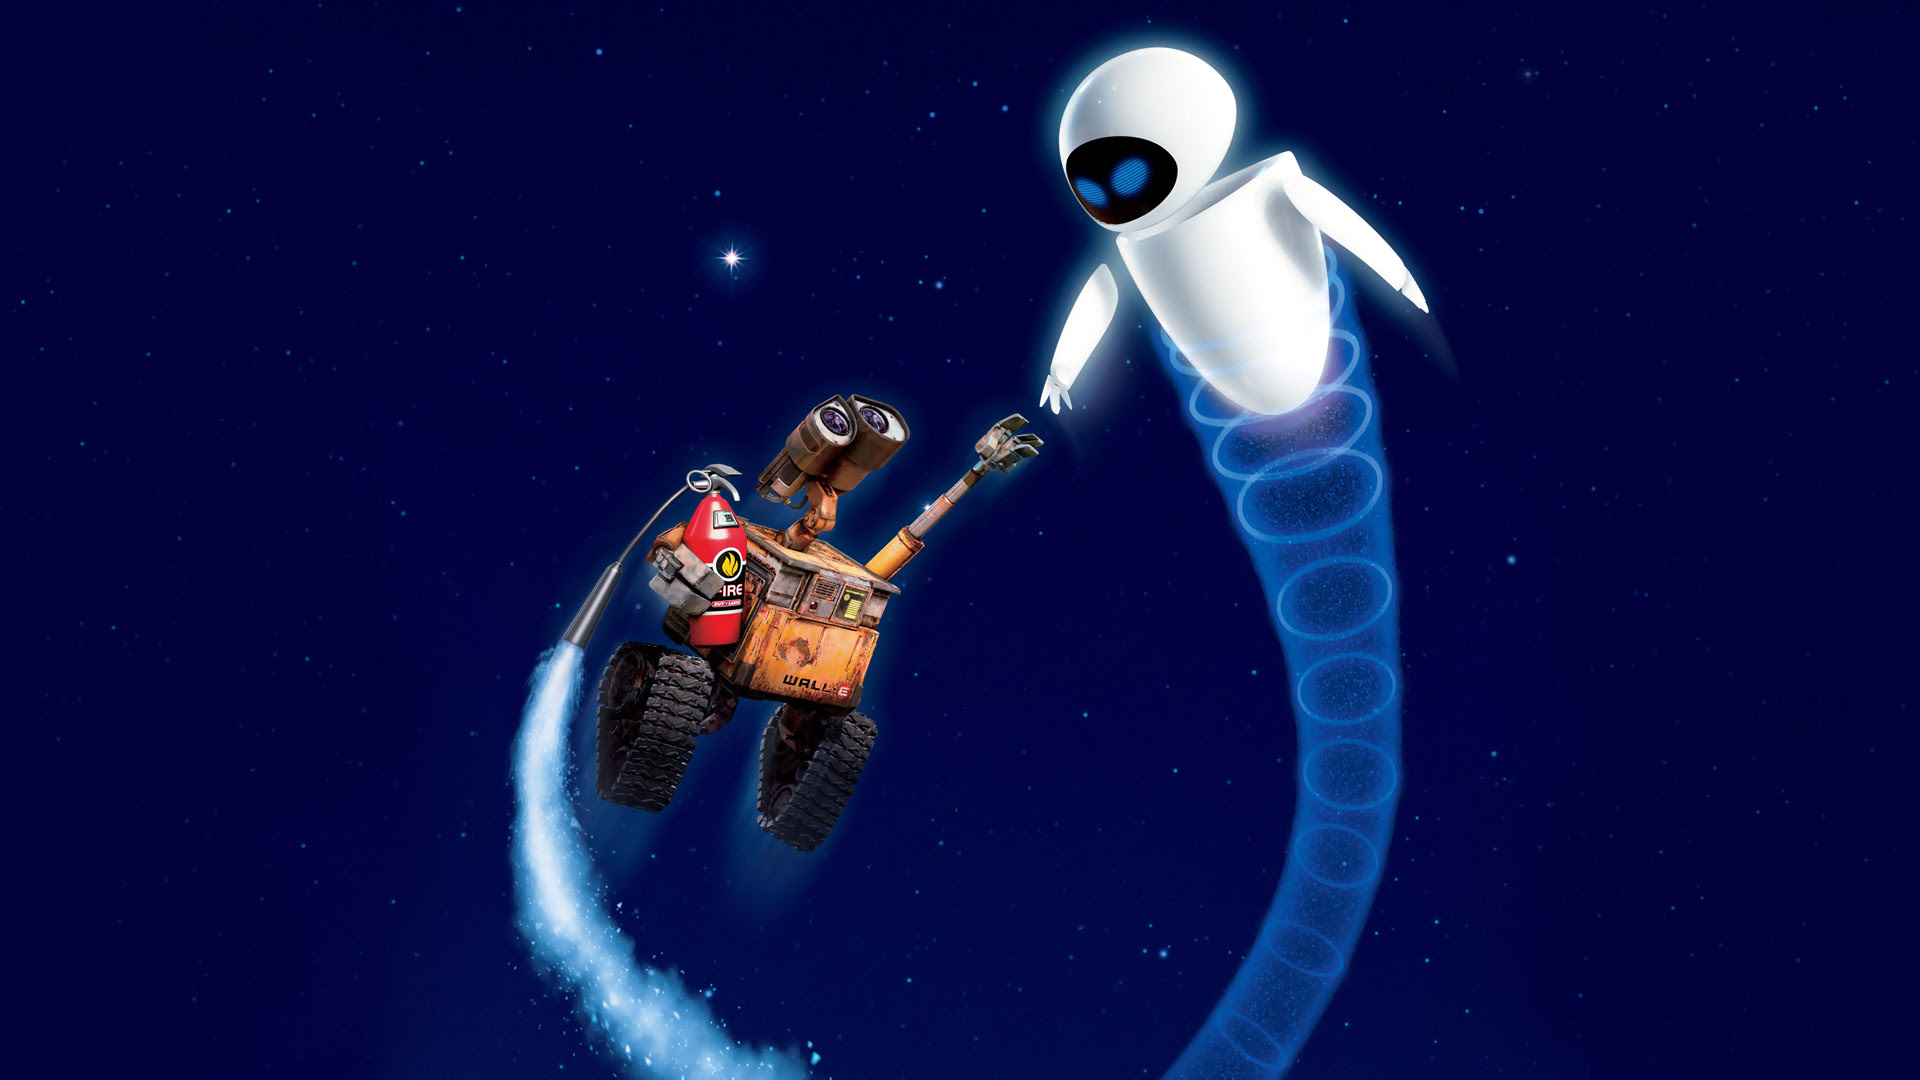 Wall E Wallpapers High Quality Download Free